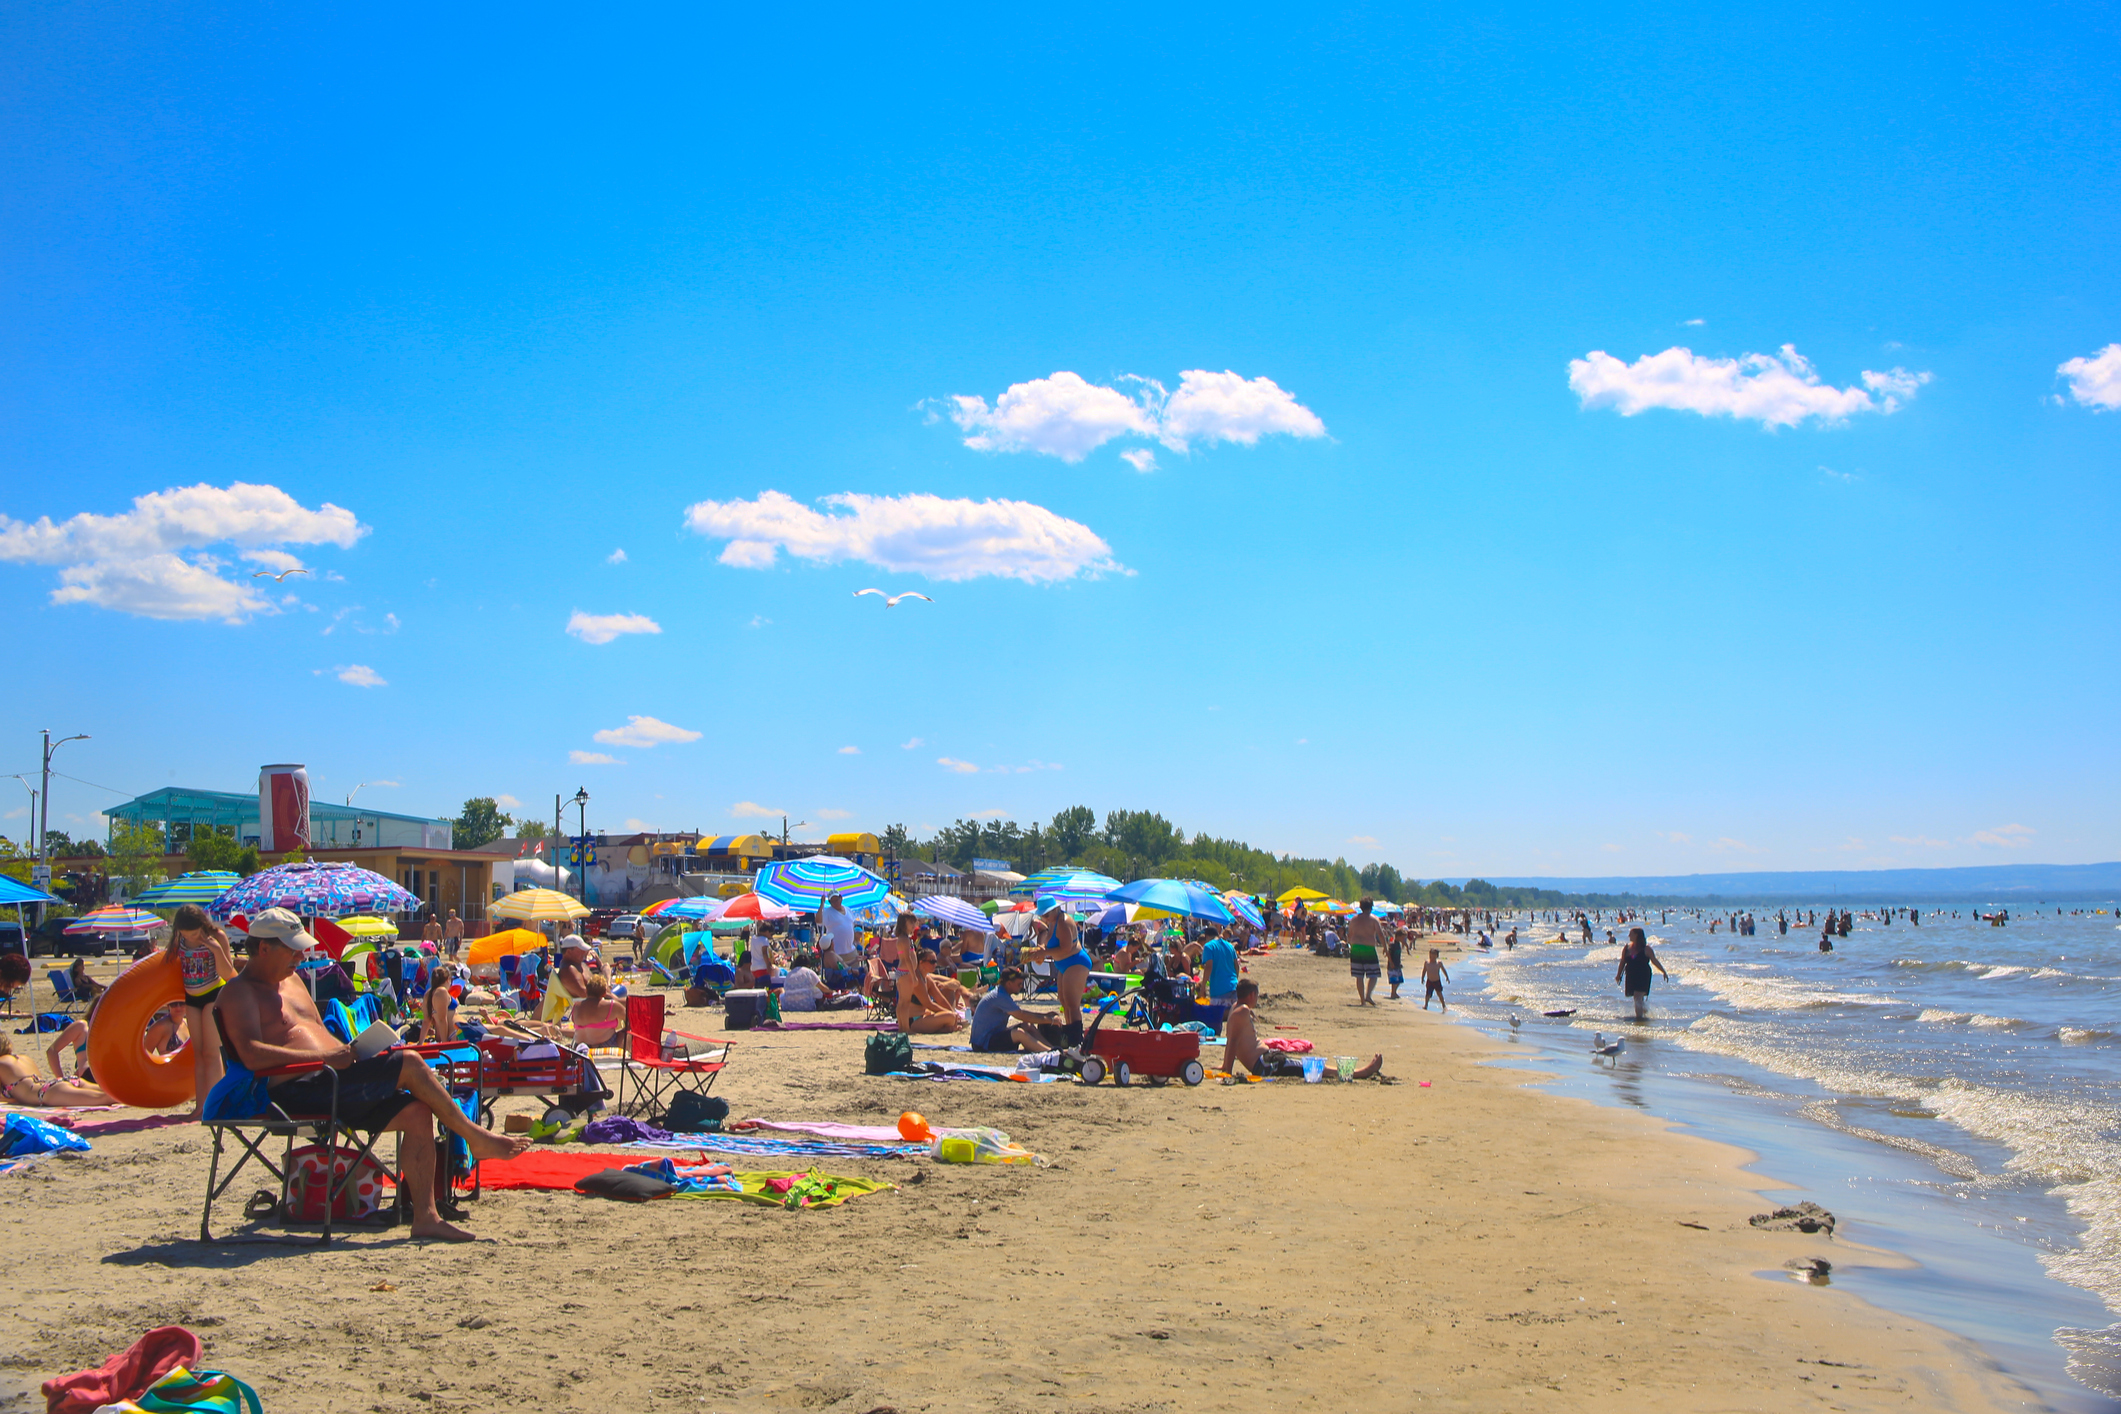 Wasaga Beach, Canada-July 22, 2916: Panoramic view with many people swimming, sunbathing, walking, on the beach on a lovely summer day.